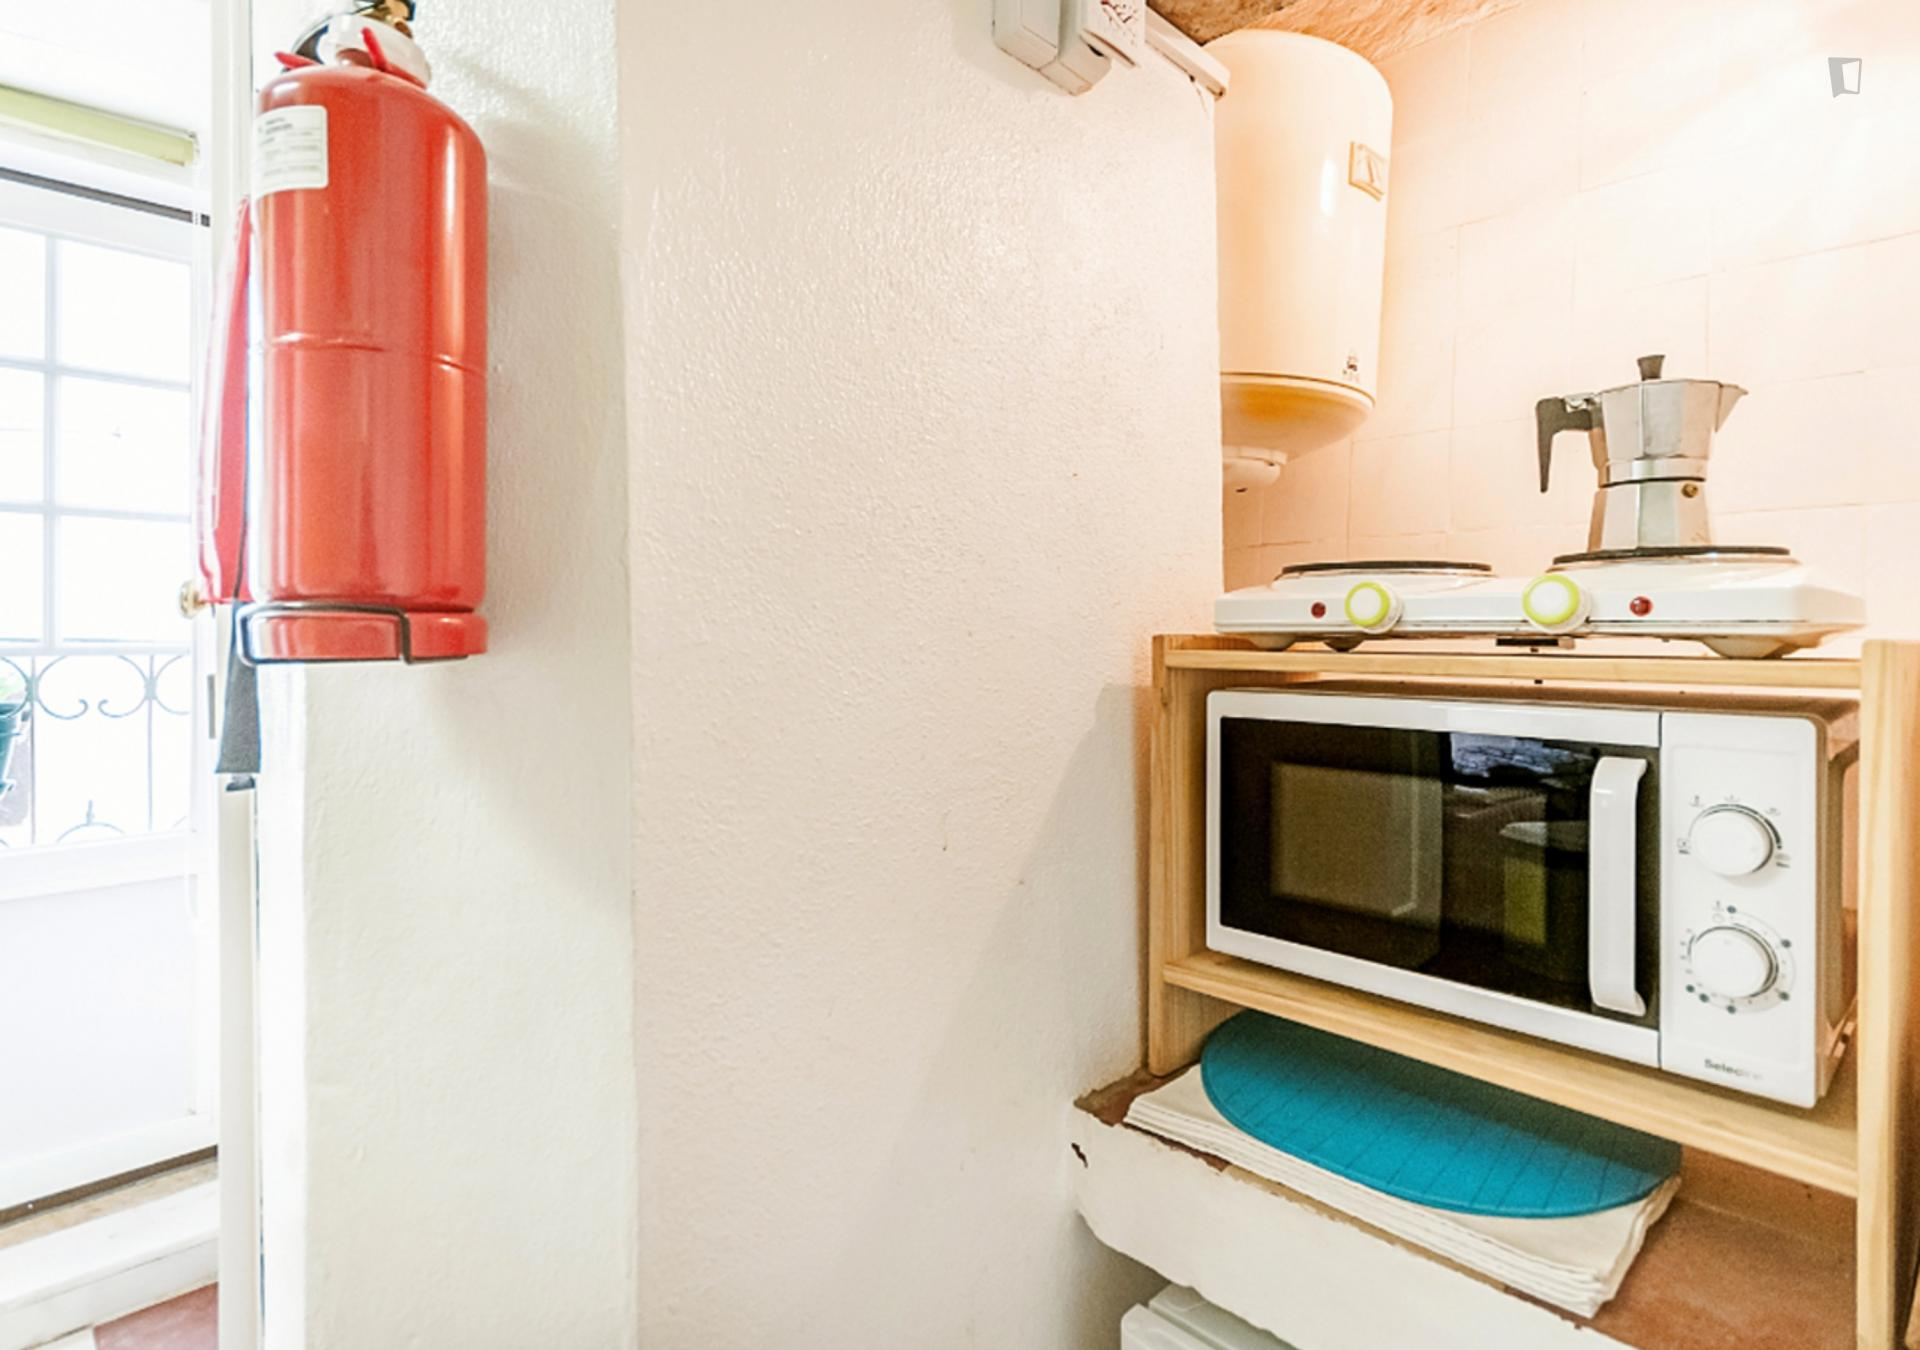 Melo- Historic 1 bedroom apartment in Lisbon